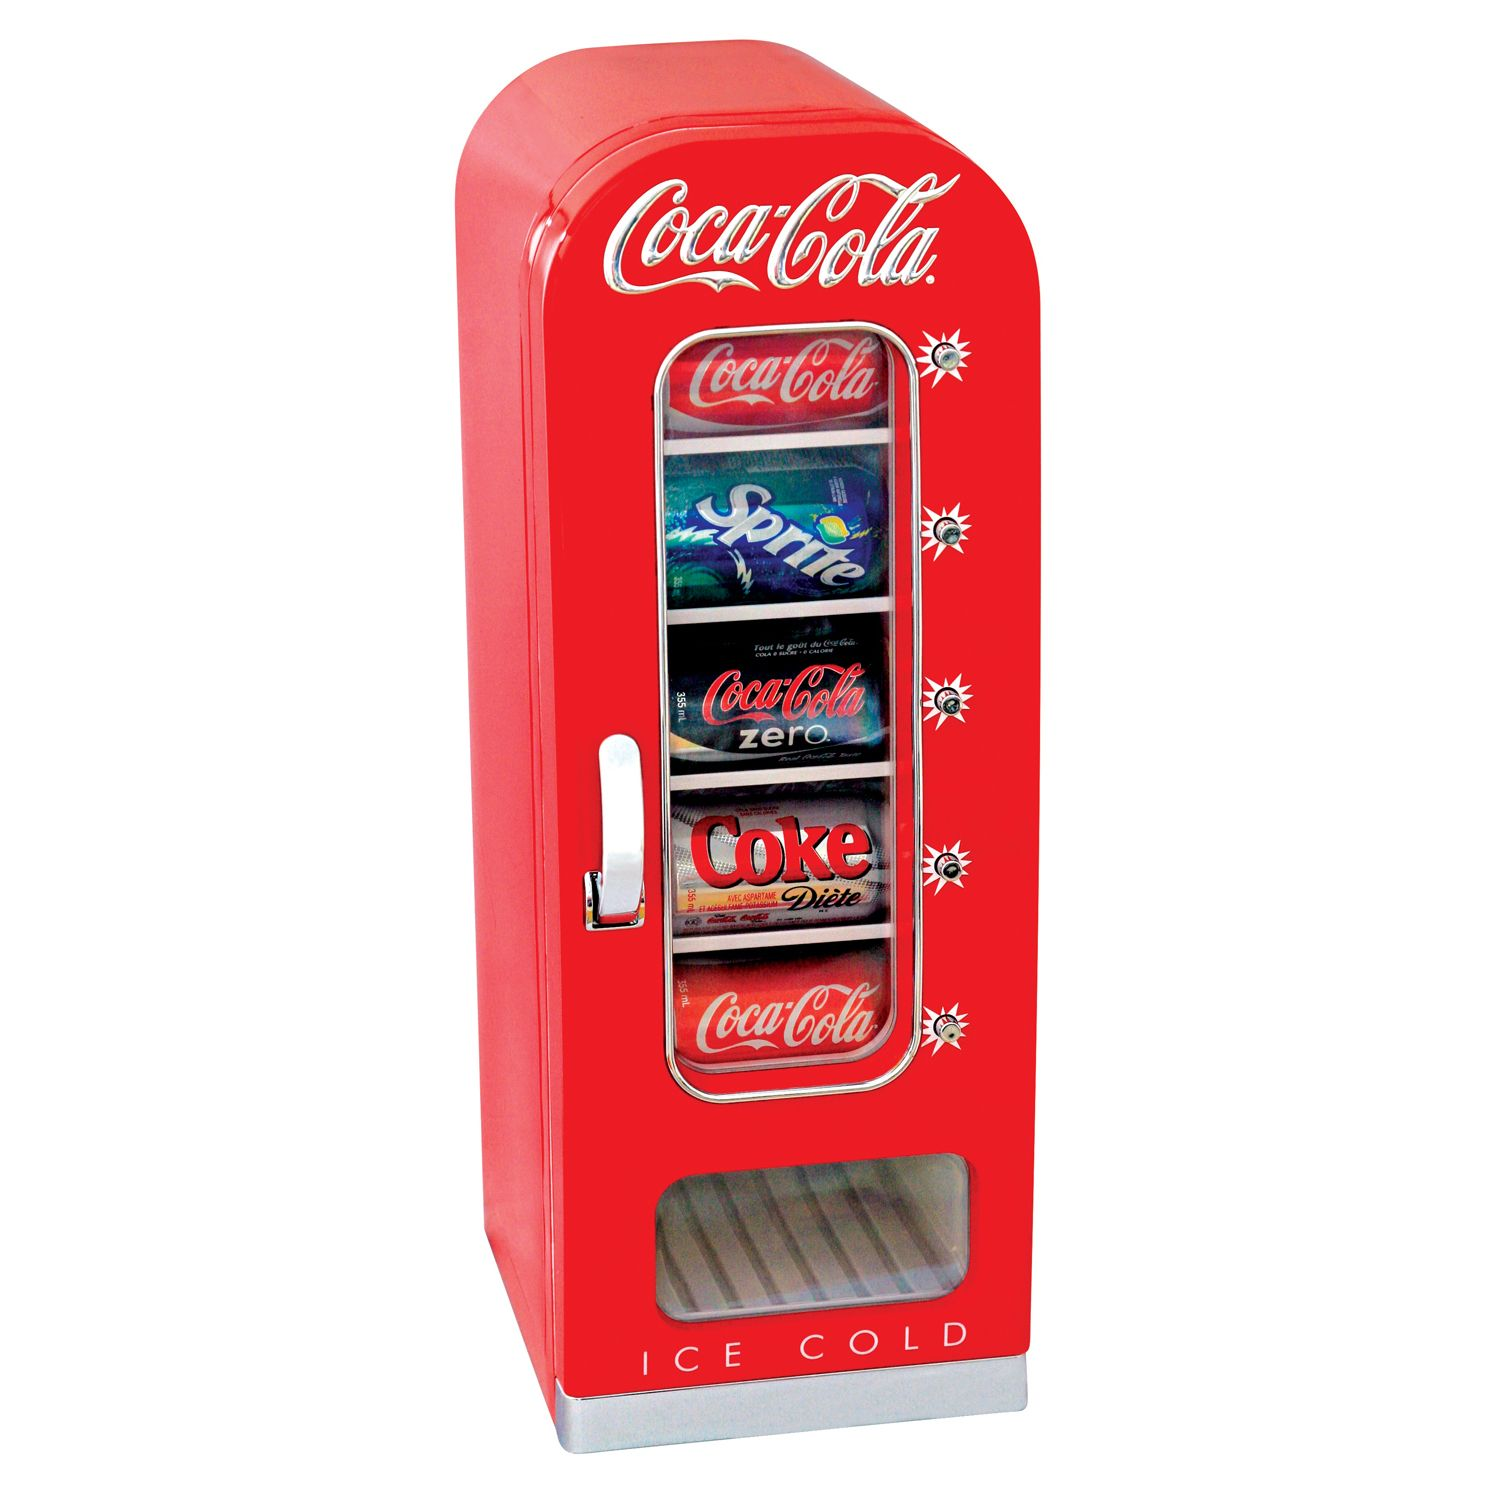 The Retro Vending Fridge will appeal to the older generation as it takes them down memory lane.